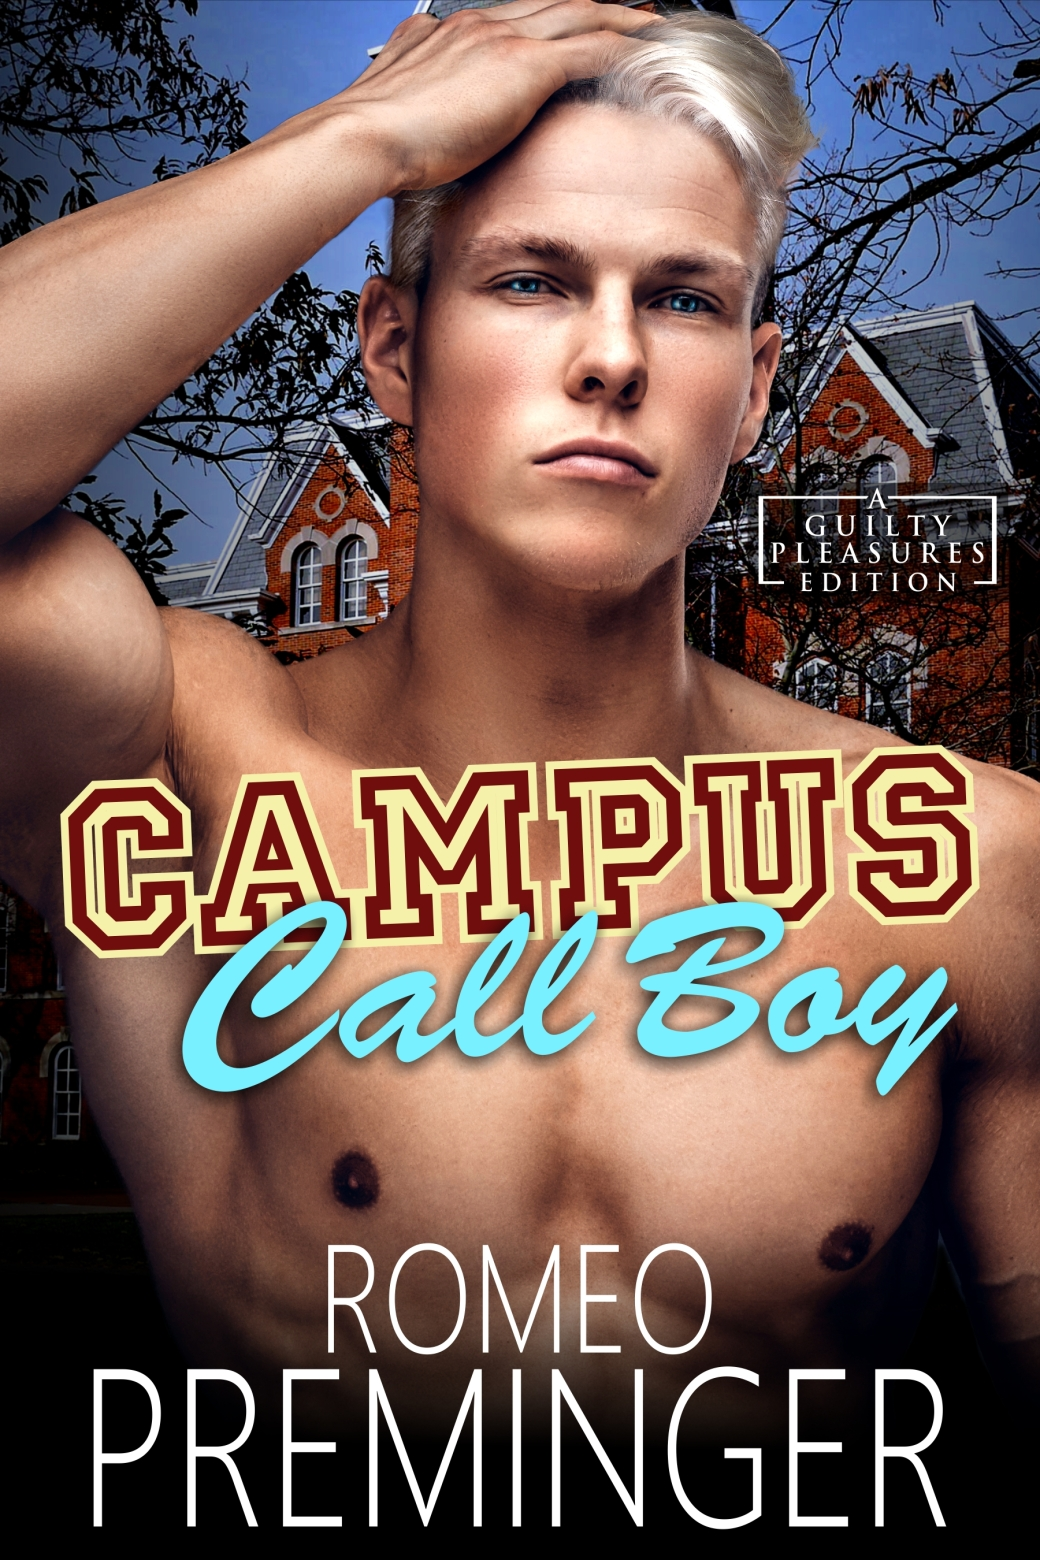 CAMPUS CALL BOY new cover 2